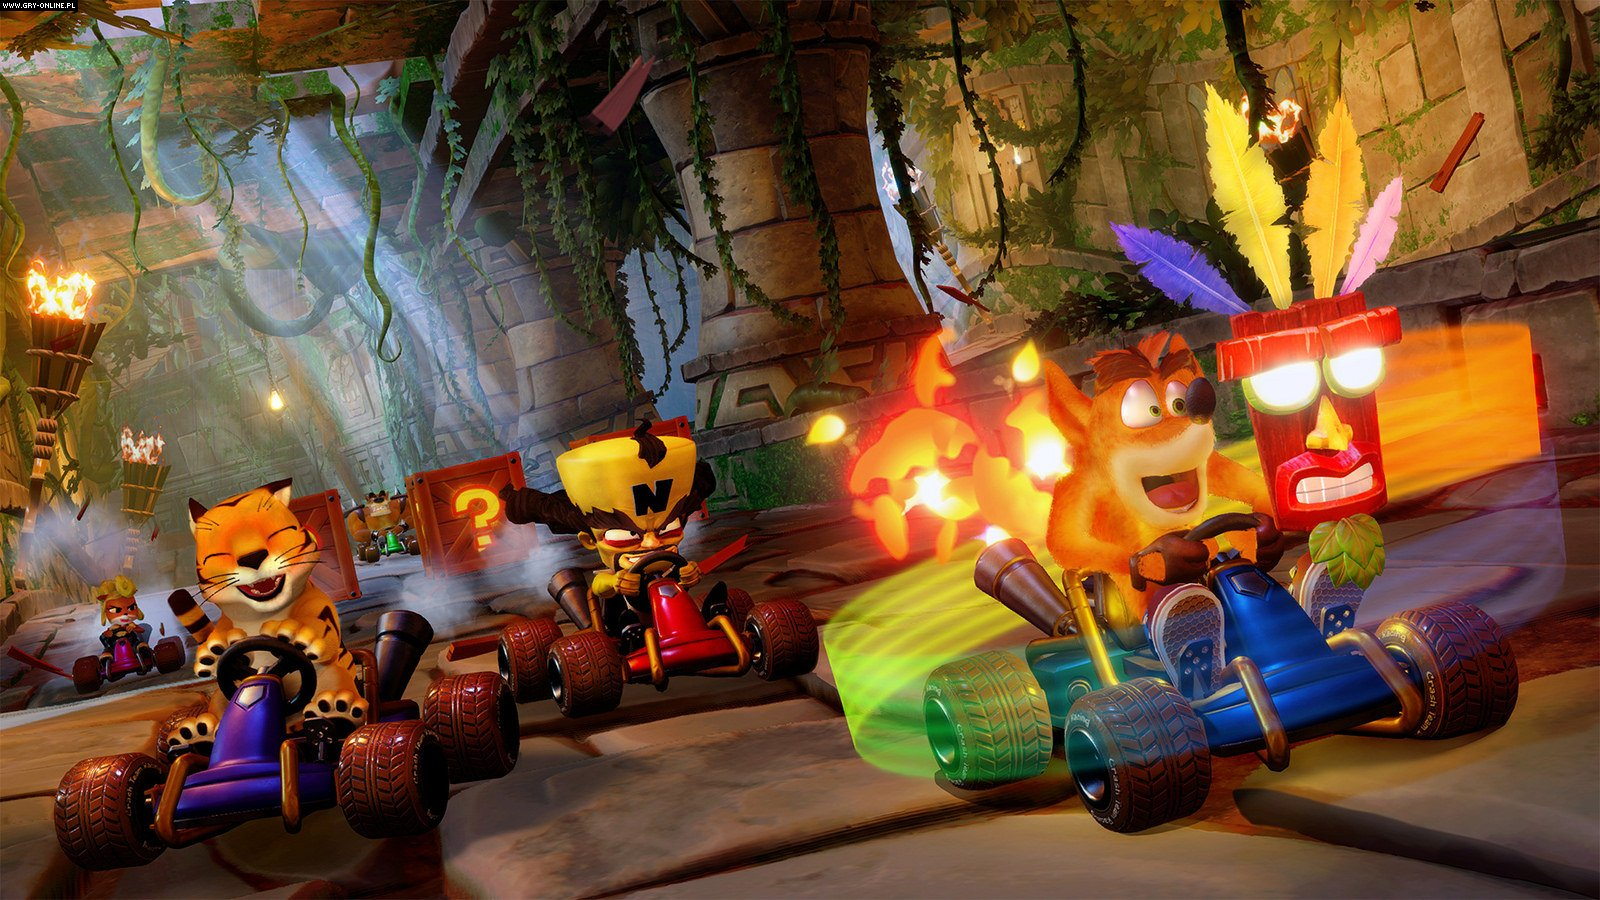 Crash Team Racing Nitro-Fueled PS4, XONE, Switch Games Image 41/45, Beenox Inc., Activision Blizzard